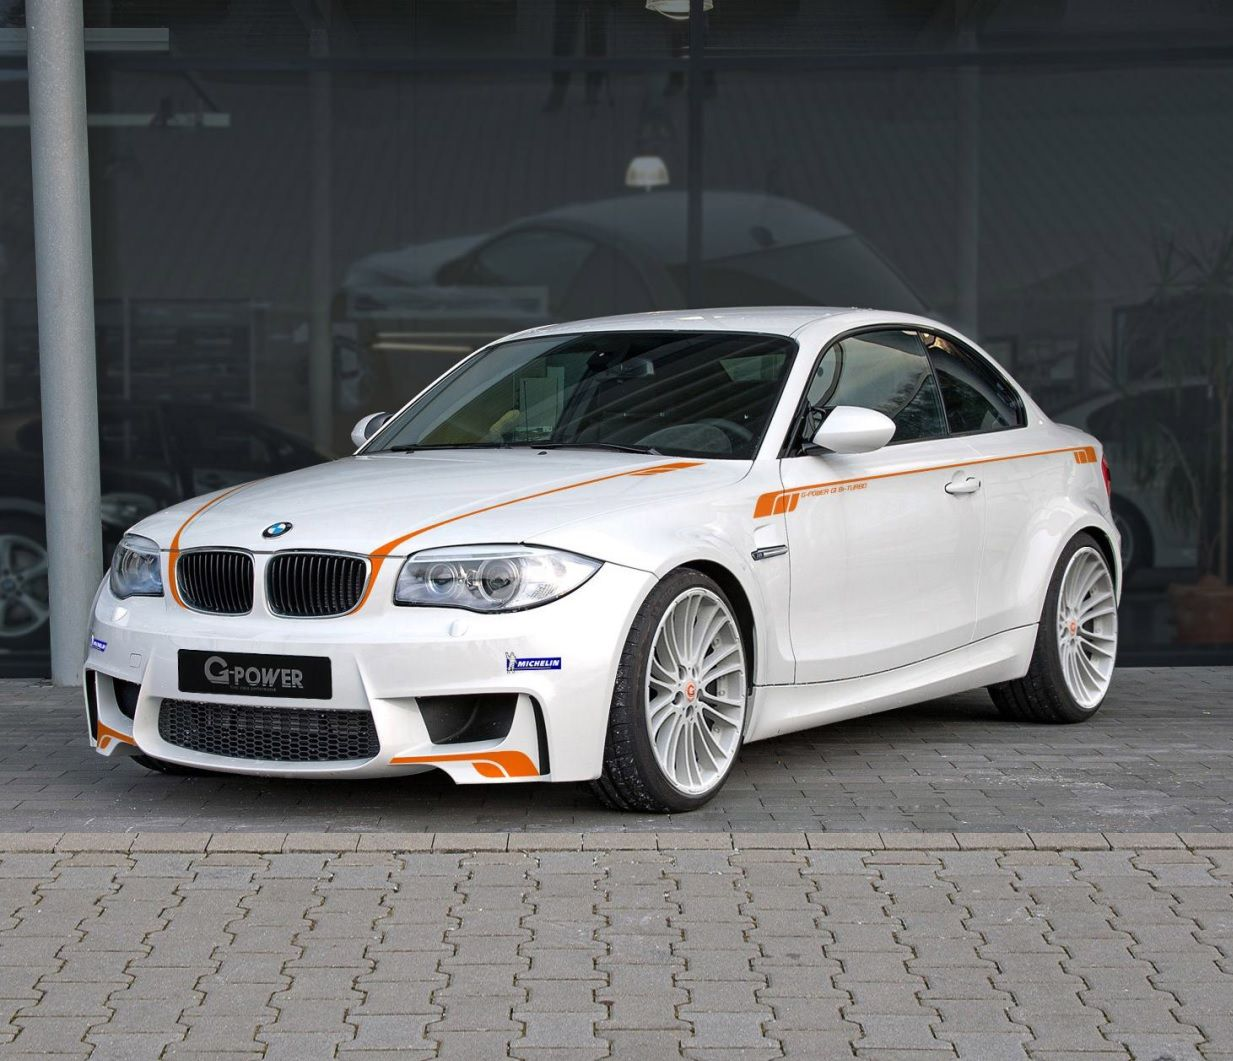 G Power Have Improved The Bmw 1m Coupe Increasing The Bhp To 435 And The Torque To 590 Nm Resulting In 0 62 Mph In 4 5 Seconds On Bmw Bmw 1 Series Coupe Cars 2013 bmw 1 series m coupe by